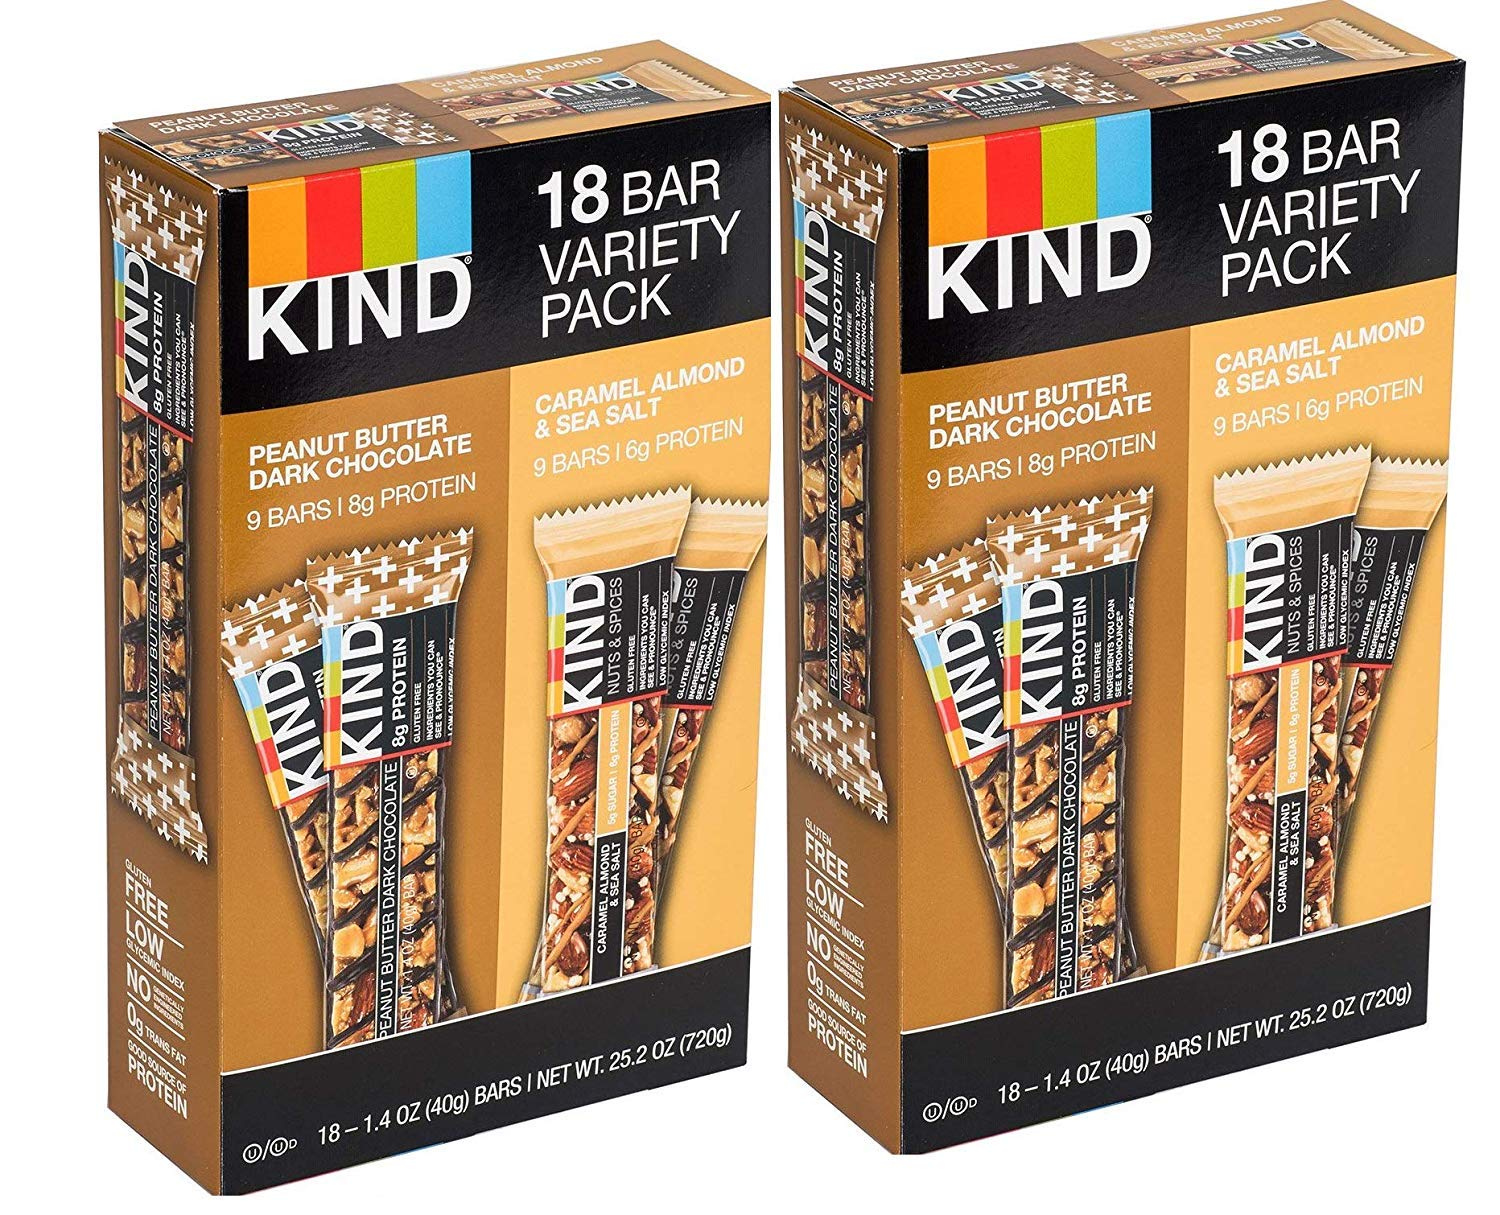 KIND Bar Caramel almond and sea salt & Peanut Butter Dark Chocolate,Variety Pack, 36 Bars by KIND (Image #1)